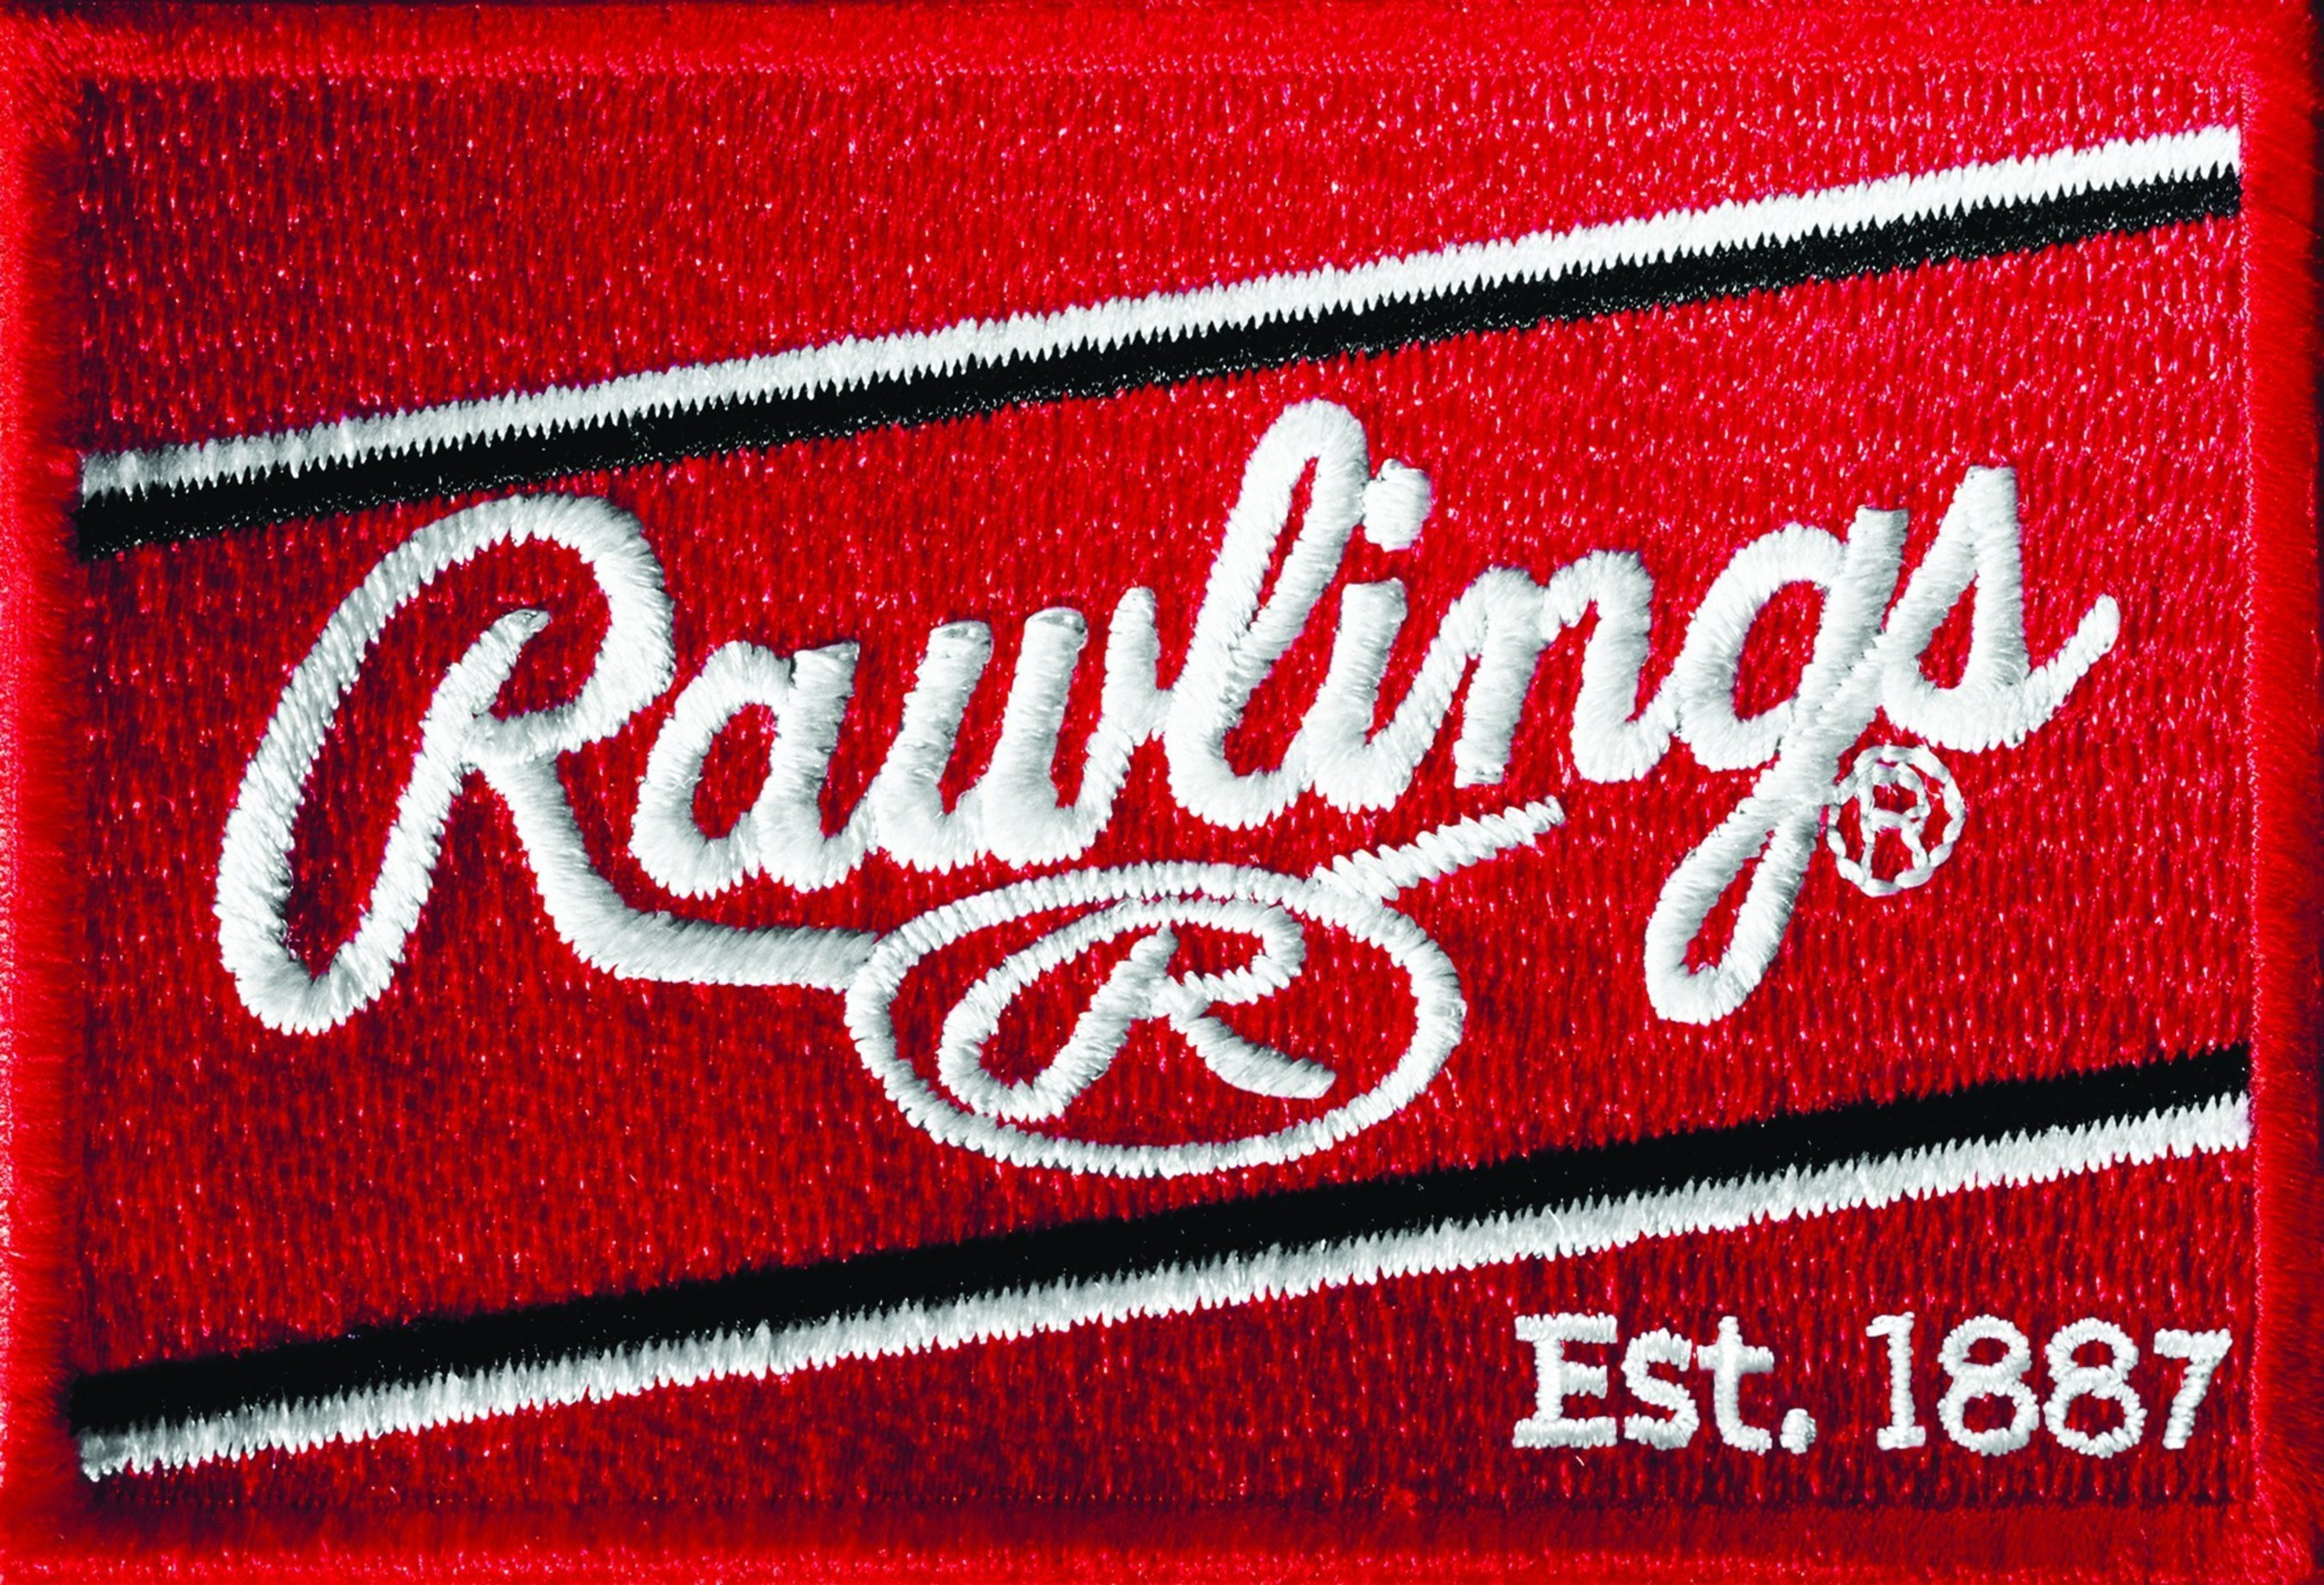 Rawlings' first-ever loyalty program, Rawlings Rewards, aims to incentivize loyal consumers and attract first-time purchasers.